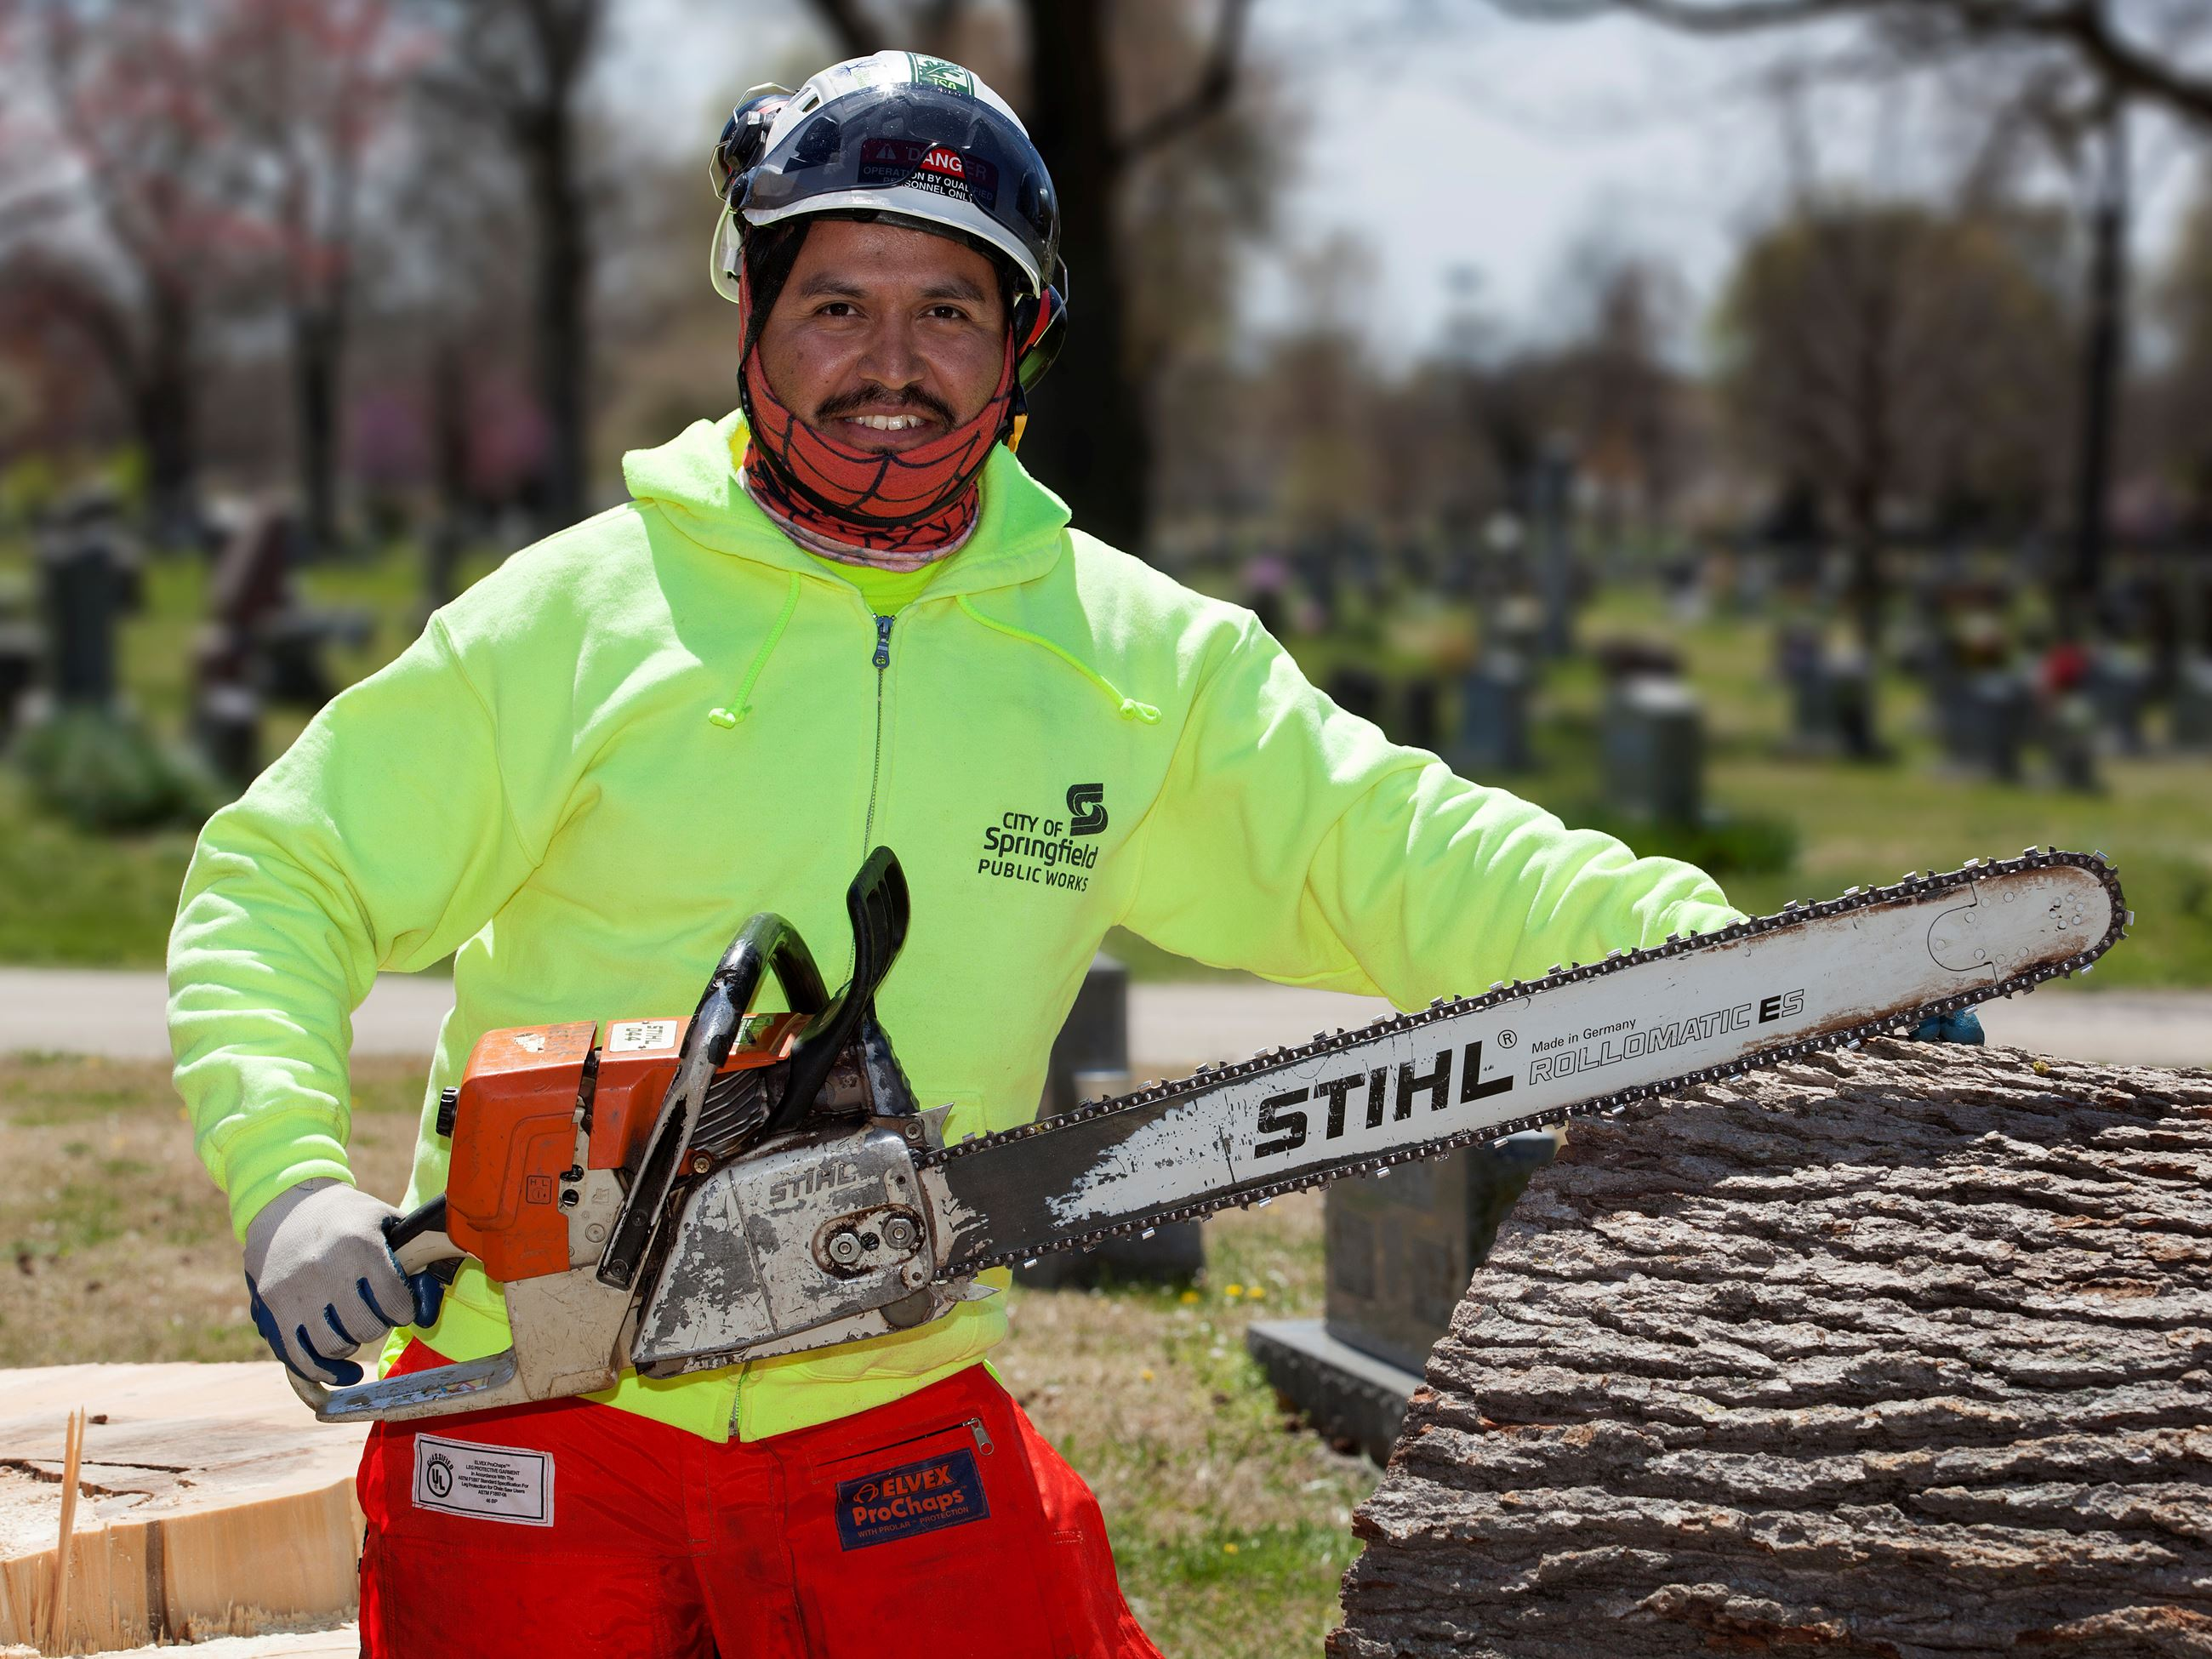 outdoor portrait of Edgar Garcia in tree trimming gear, with a large chain saw